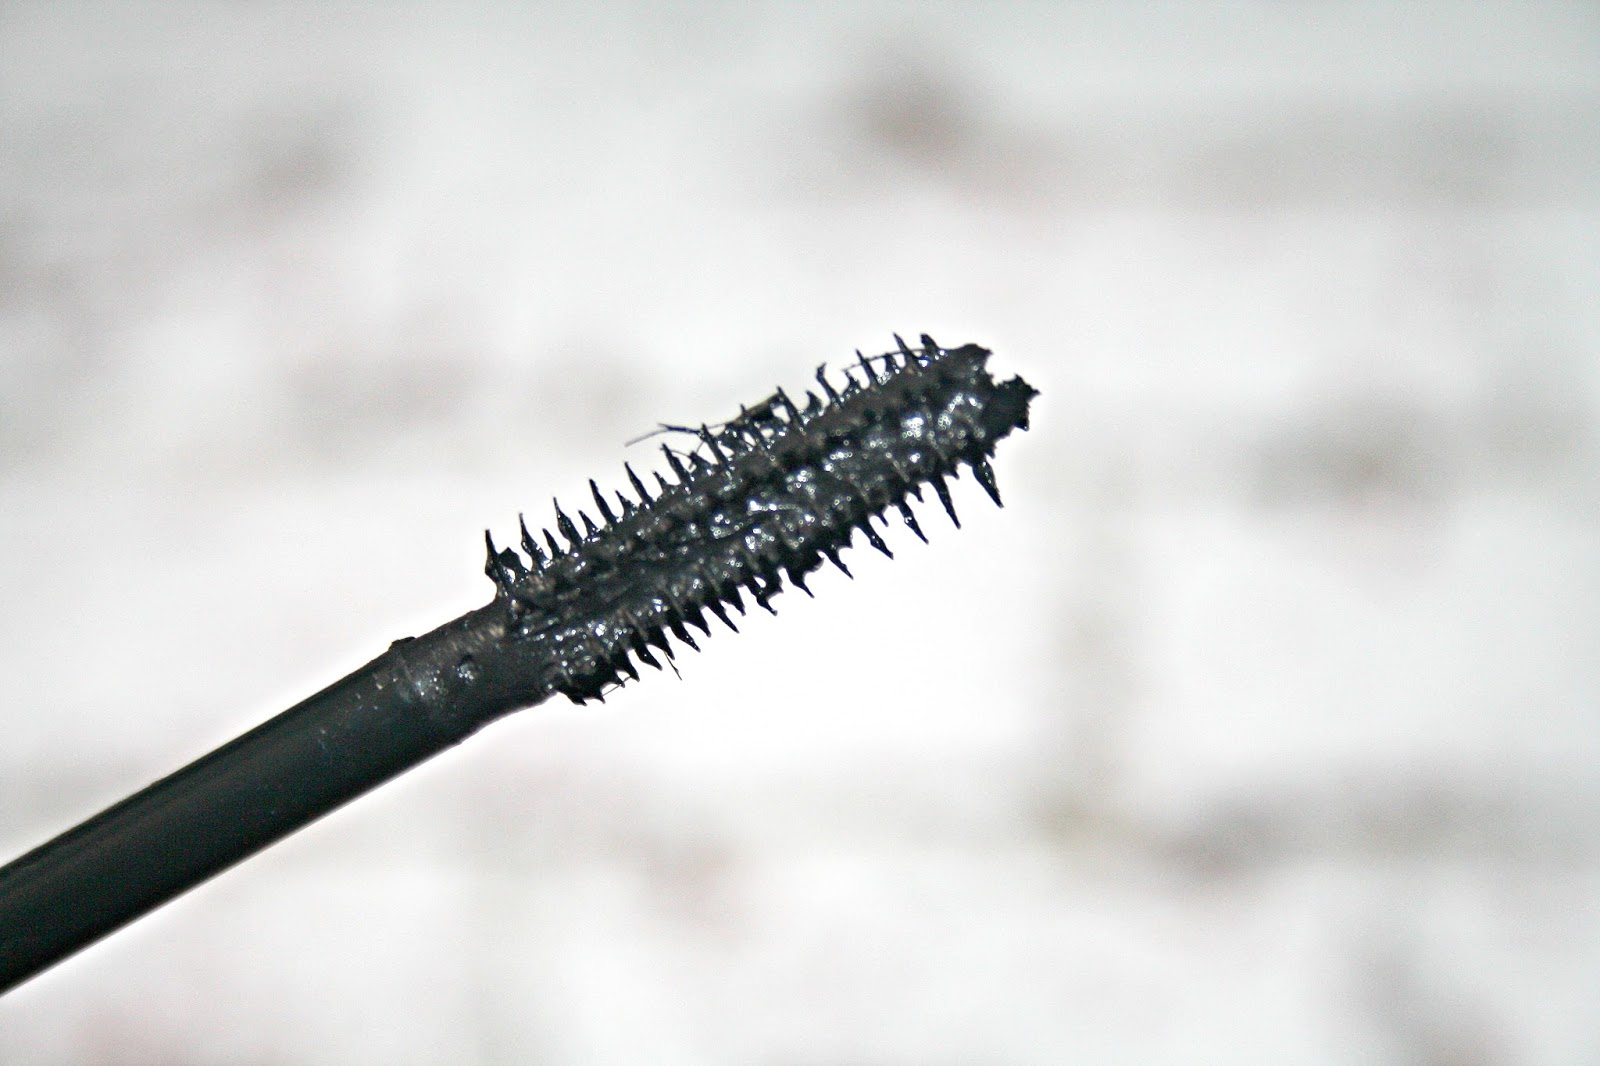 c7247fae65d I am quite set in my ways when it comes to a mascara, there are things I  like and there are things I don't. I have fairly long lashes and as such,  ...